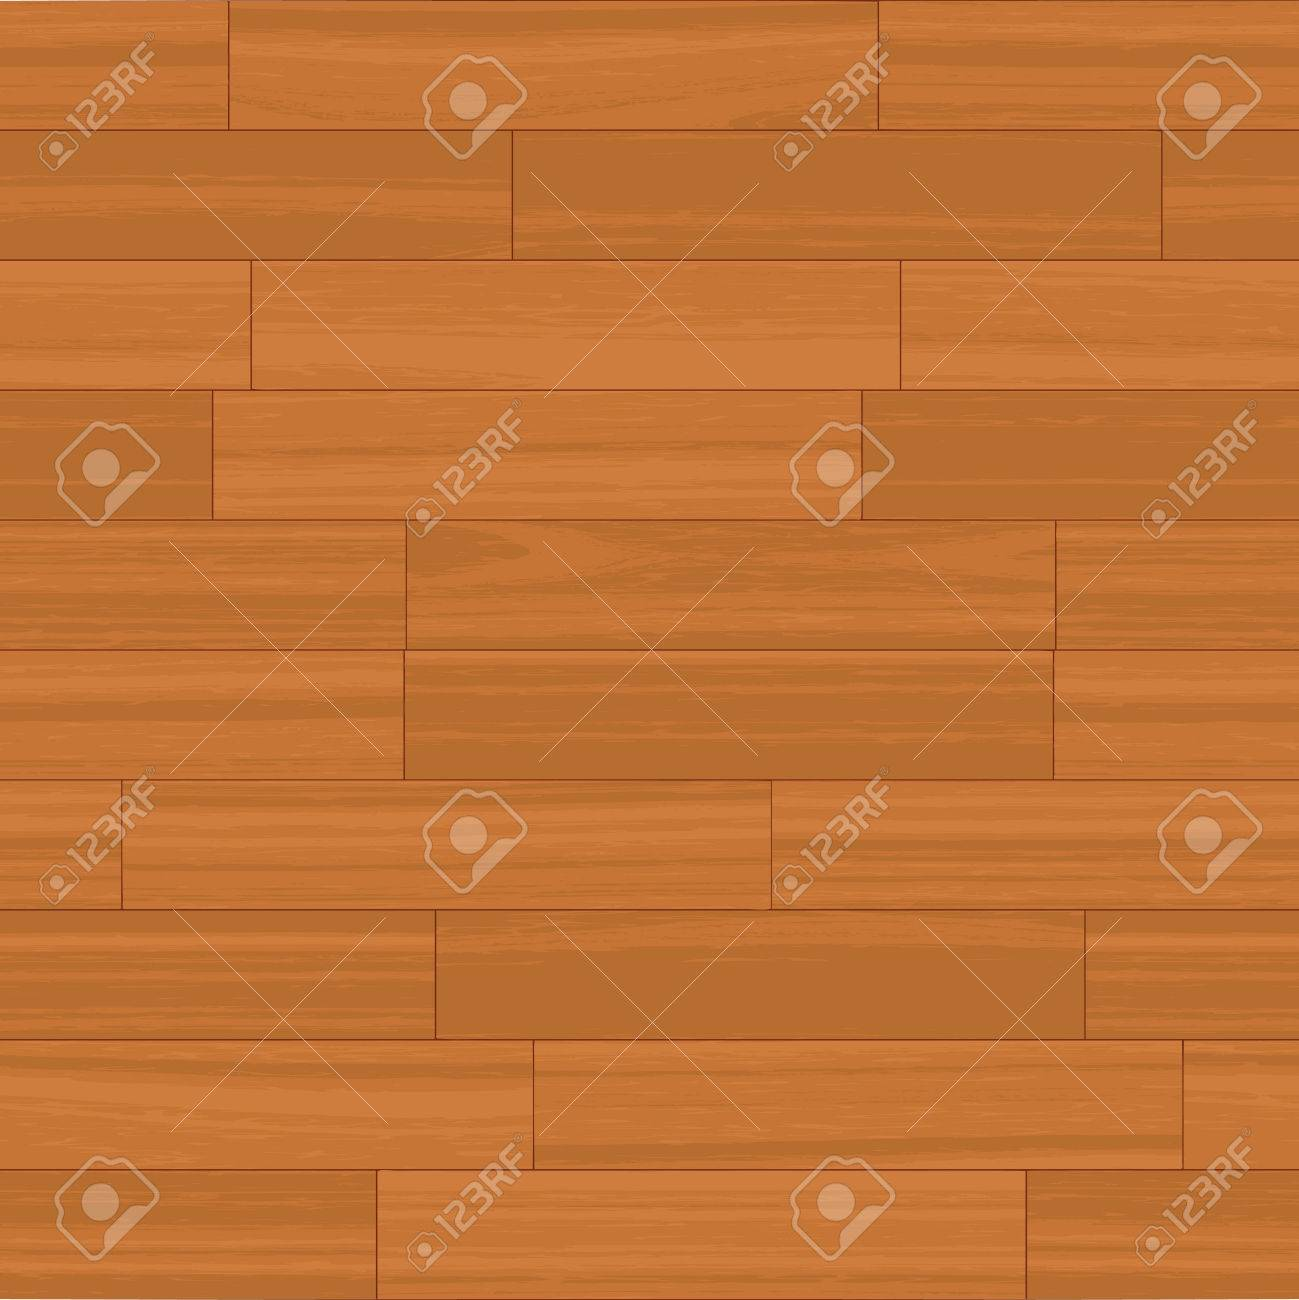 This wood floor pattern tiles seamlessly as a background. Stock Vector - 4301732